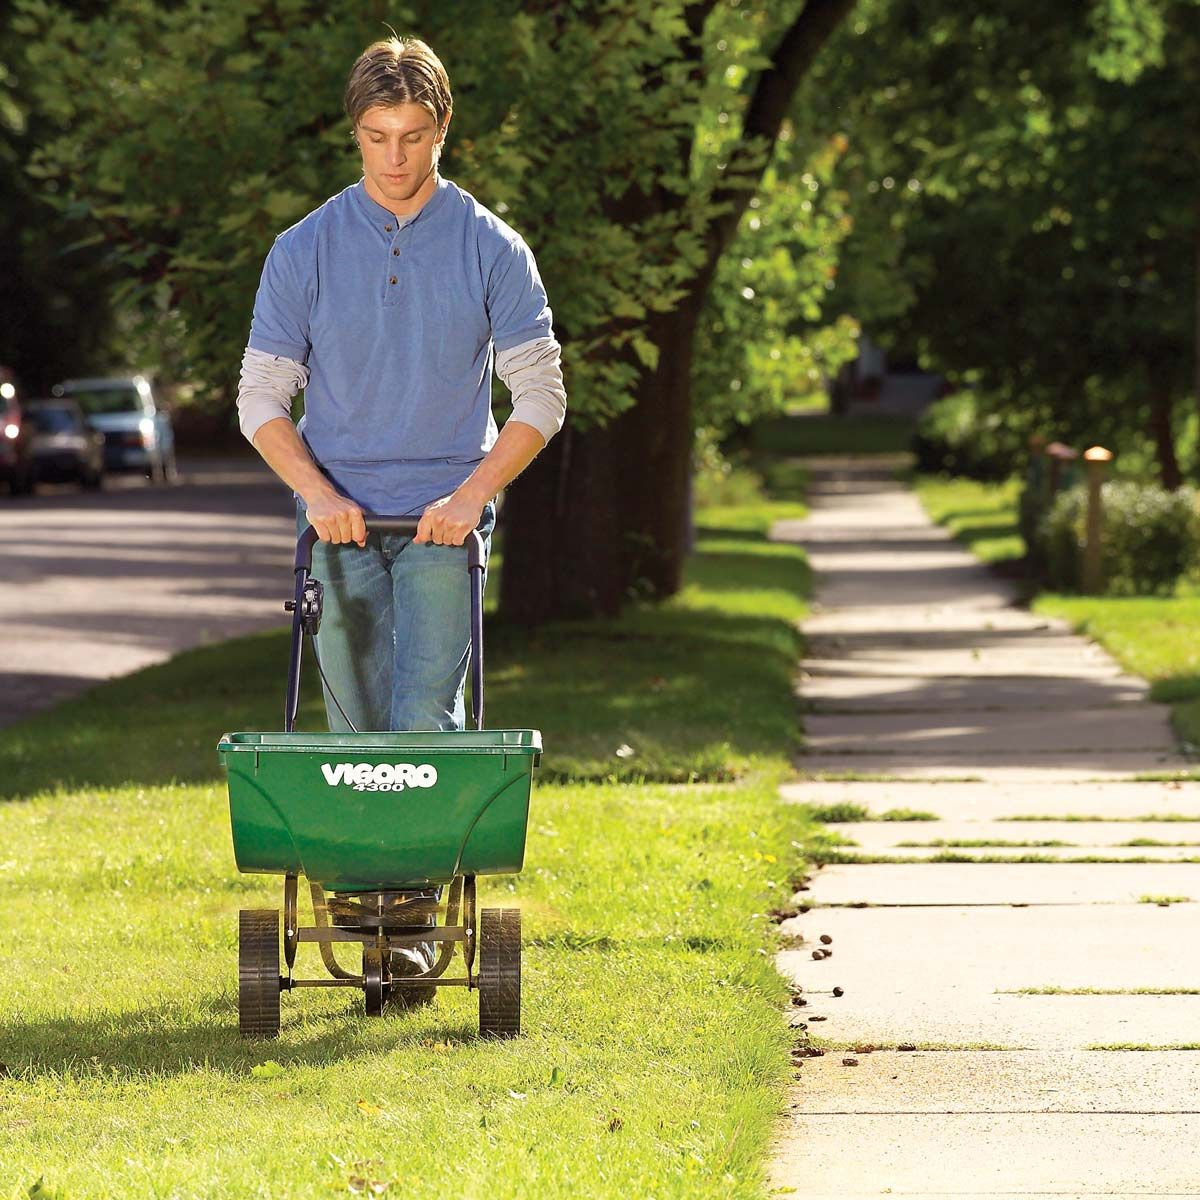 How to get rid of crabgrass crab grass lawn care tips